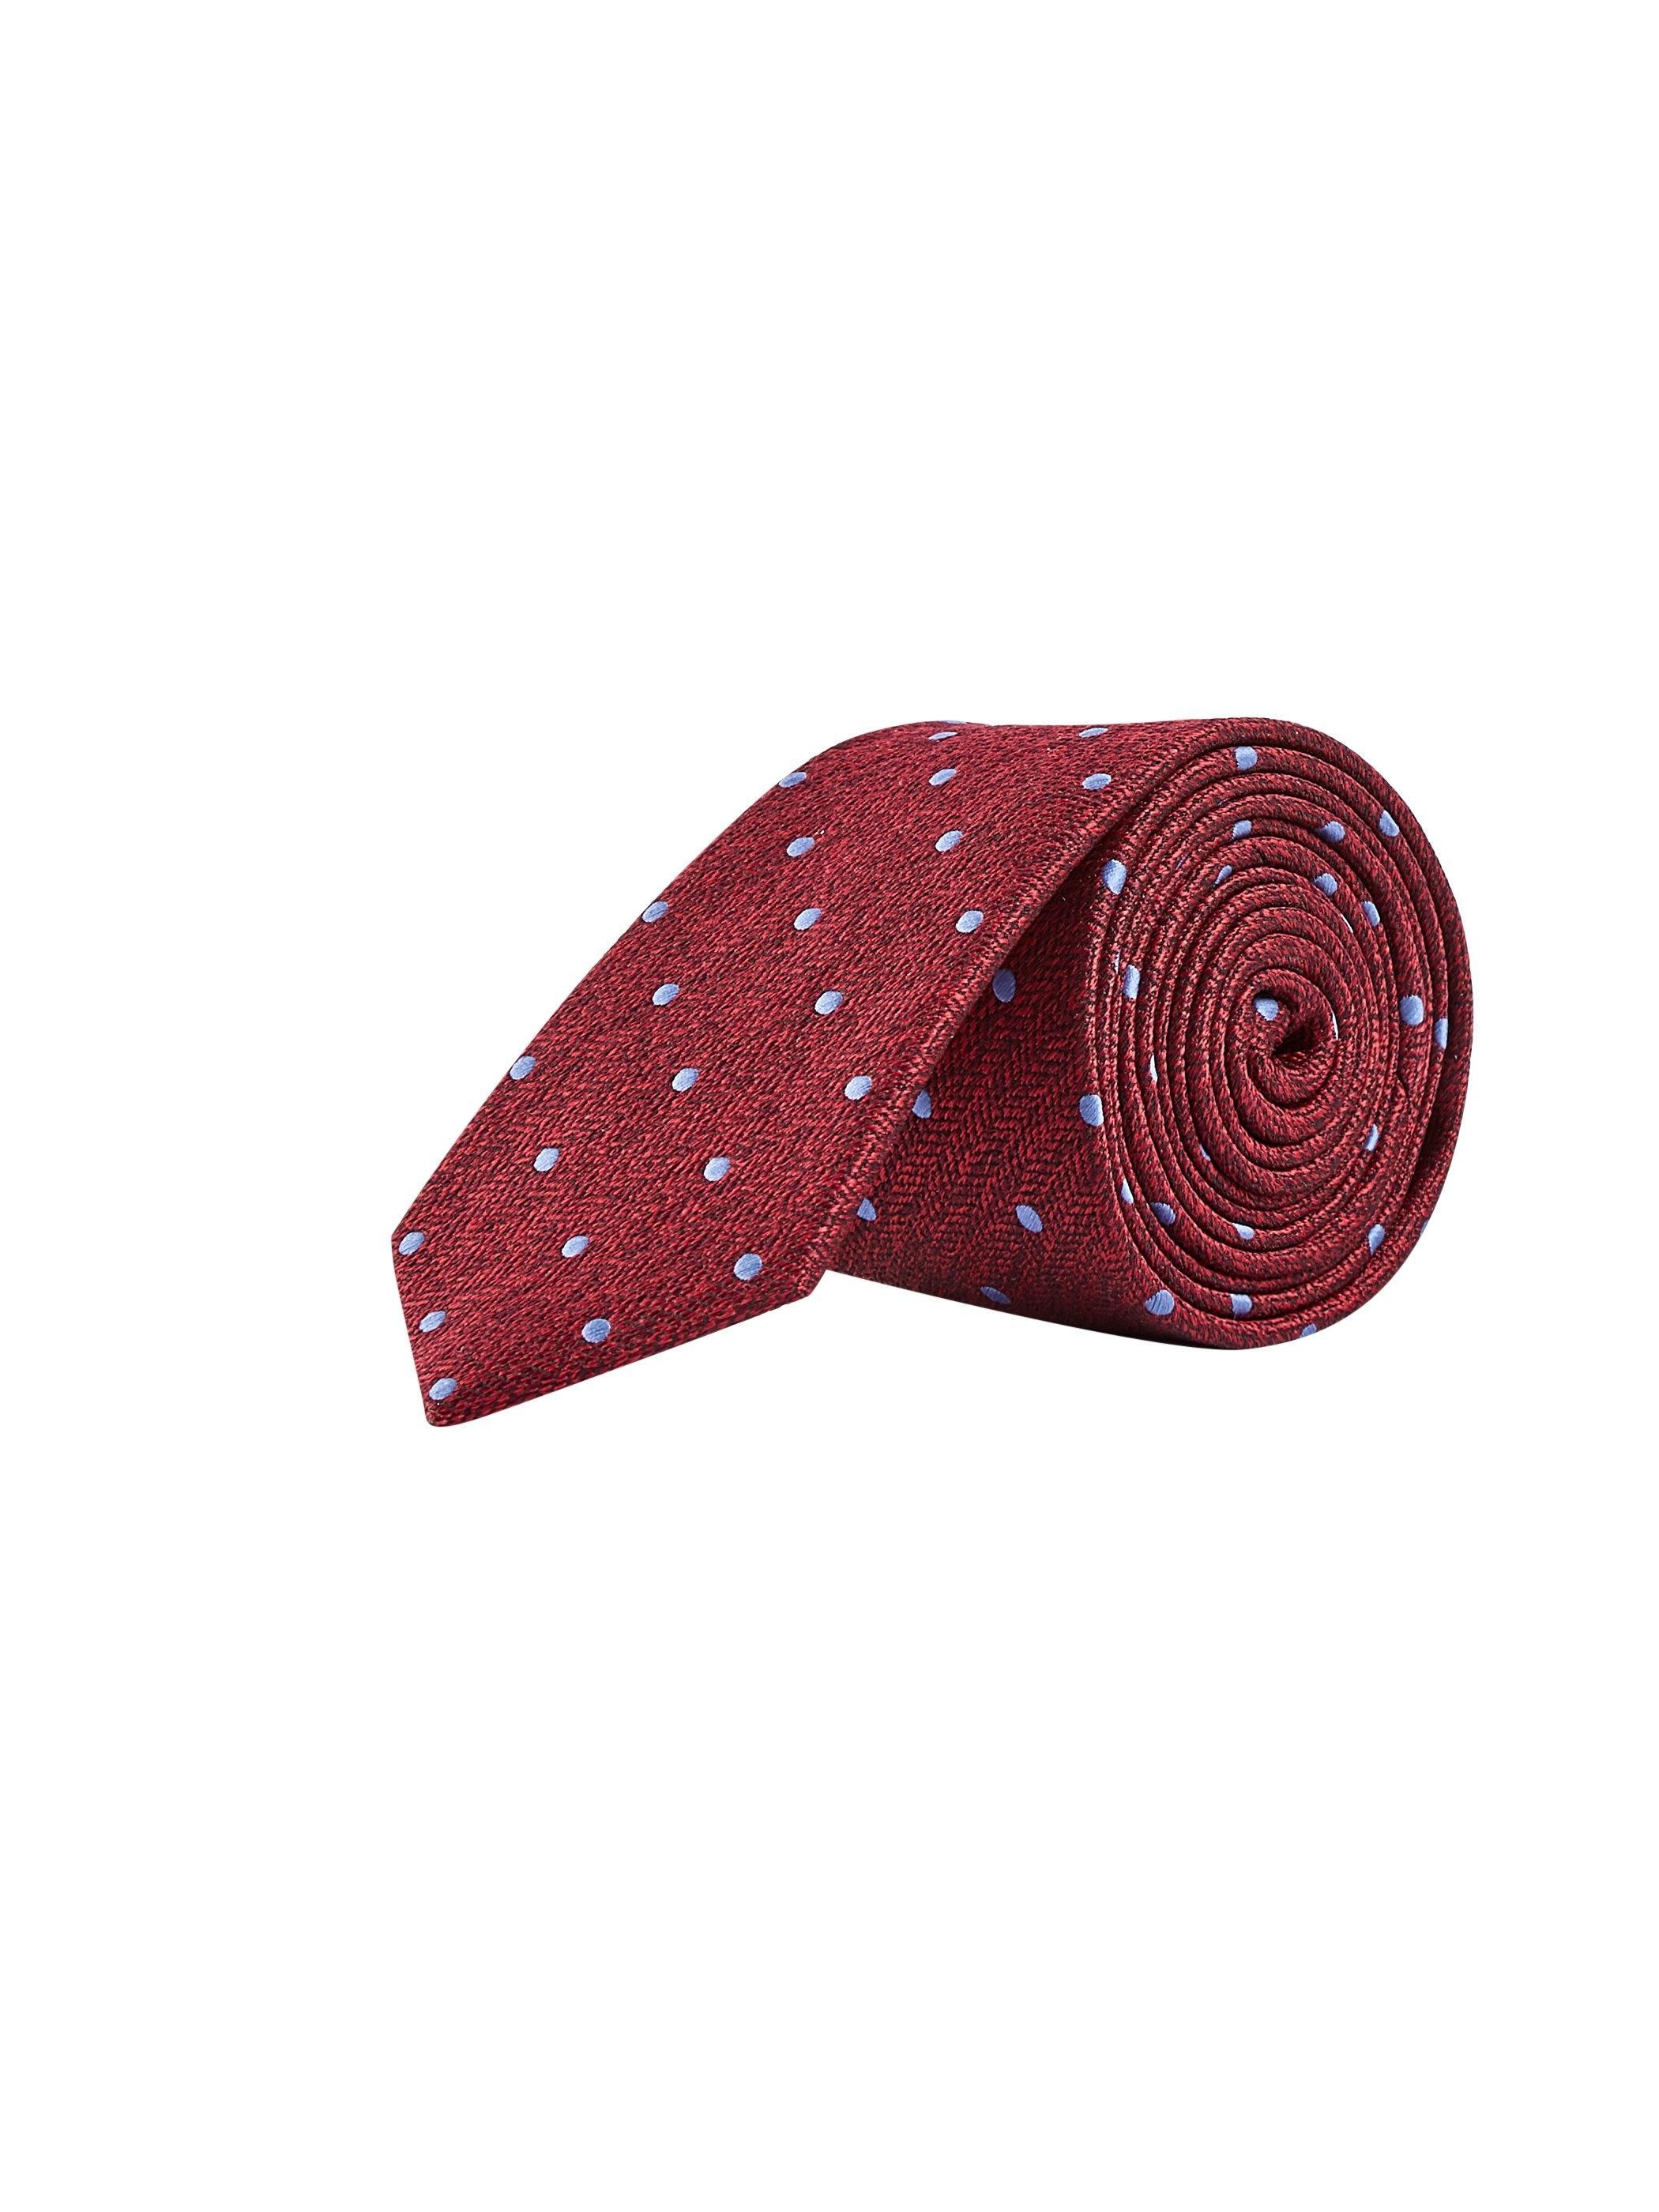 69e3b1efecad Burton 2 Pack Navy Floral And Red Polka Dot Tie Set in Blue for Men - Lyst